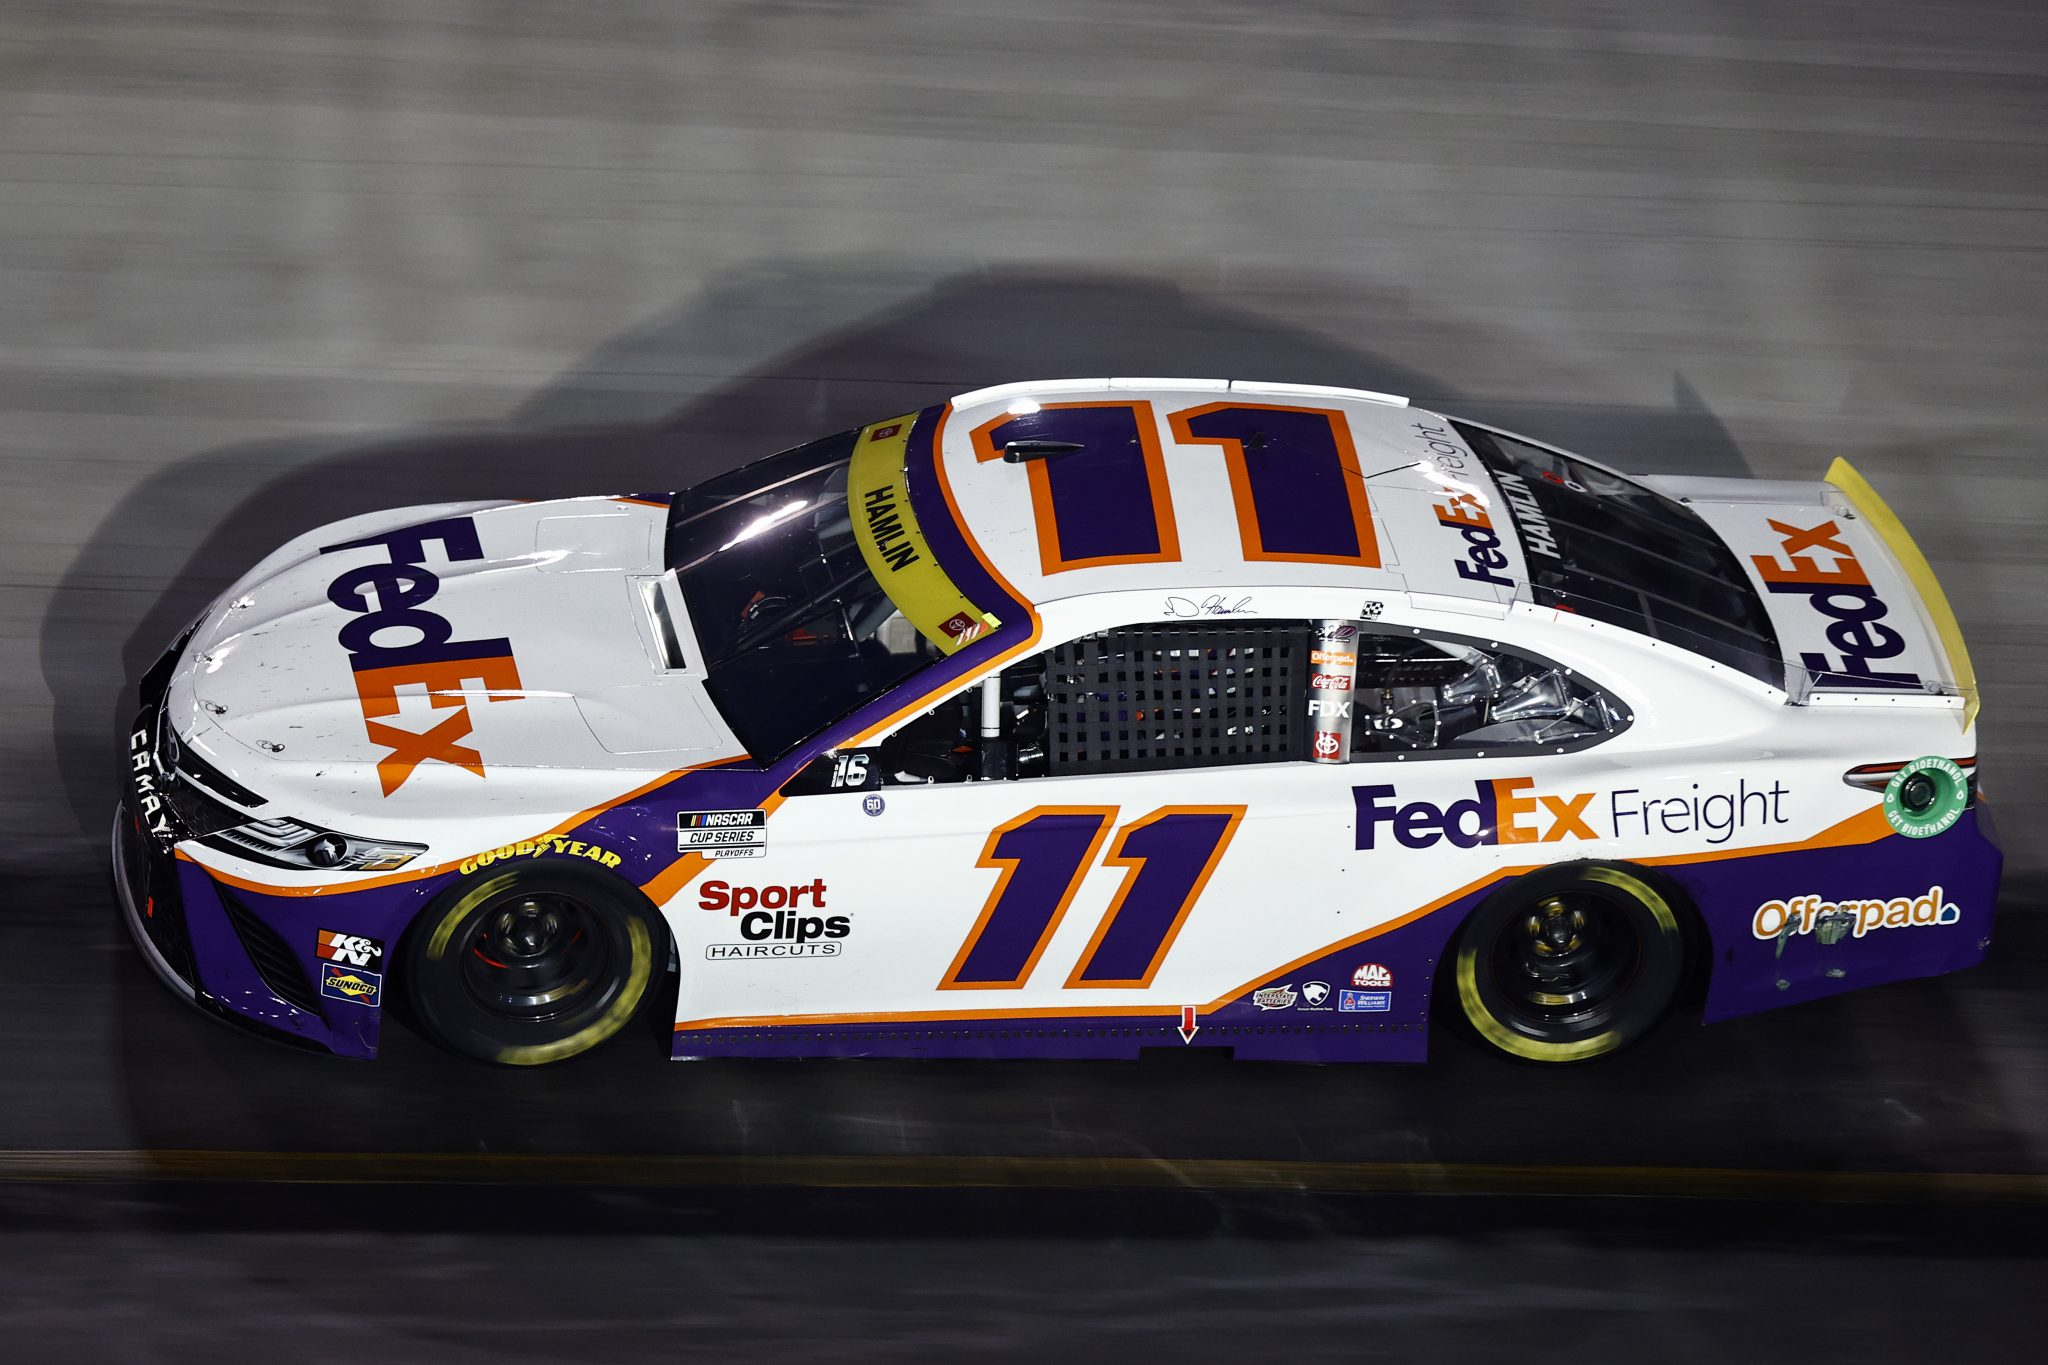 BRISTOL, TENNESSEE - SEPTEMBER 18: Denny Hamlin, driver of the #11 FedEx Freight Toyota, drives during the NASCAR Cup Series Bass Pro Shops Night Race at Bristol Motor Speedway on September 18, 2021 in Bristol, Tennessee. (Photo by Jared C. Tilton/Getty Images)   Getty Images